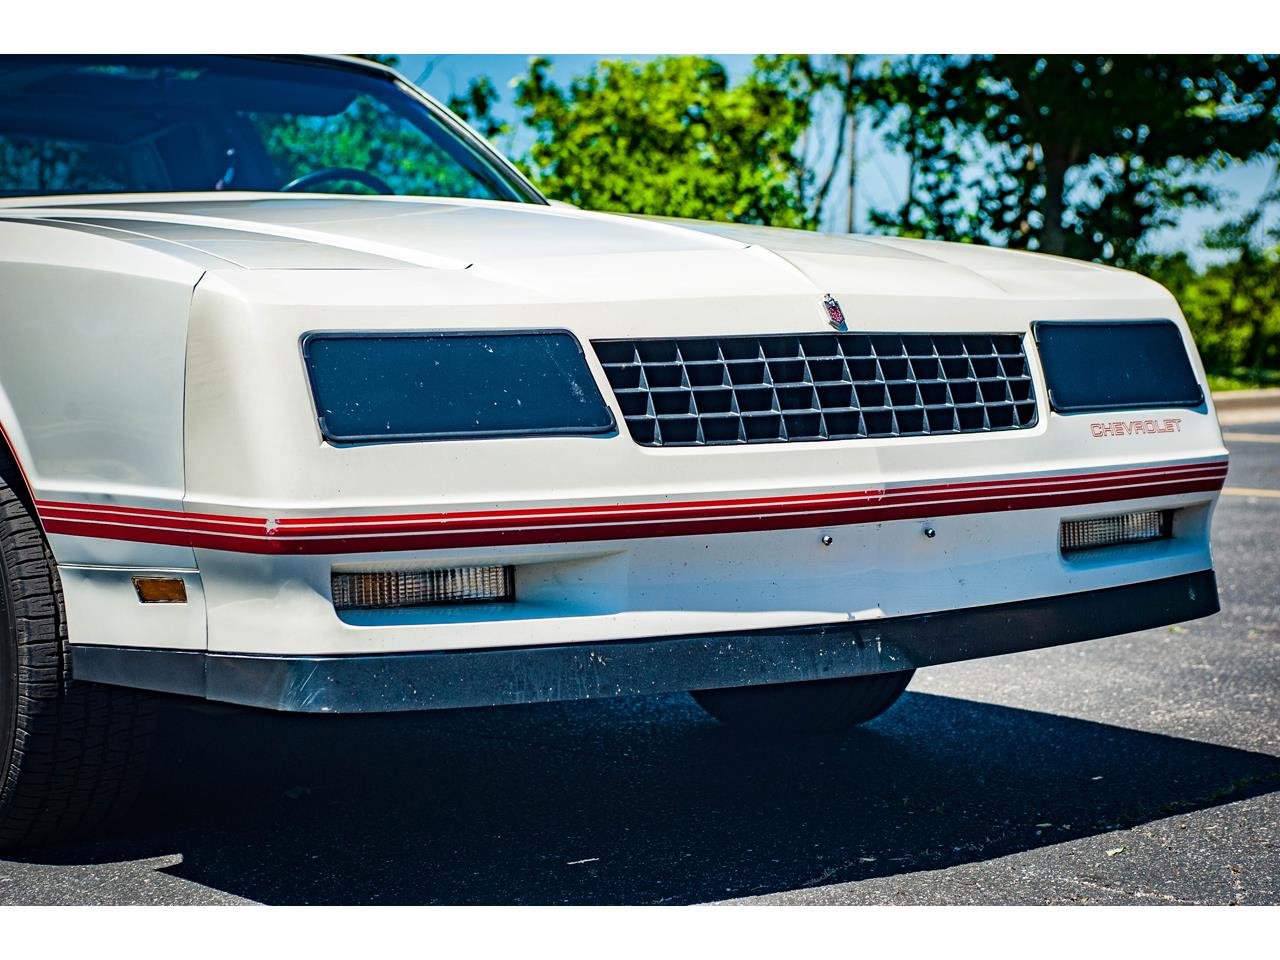 Large Picture of '88 Chevrolet Monte Carlo Offered by Gateway Classic Cars - St. Louis - QENP